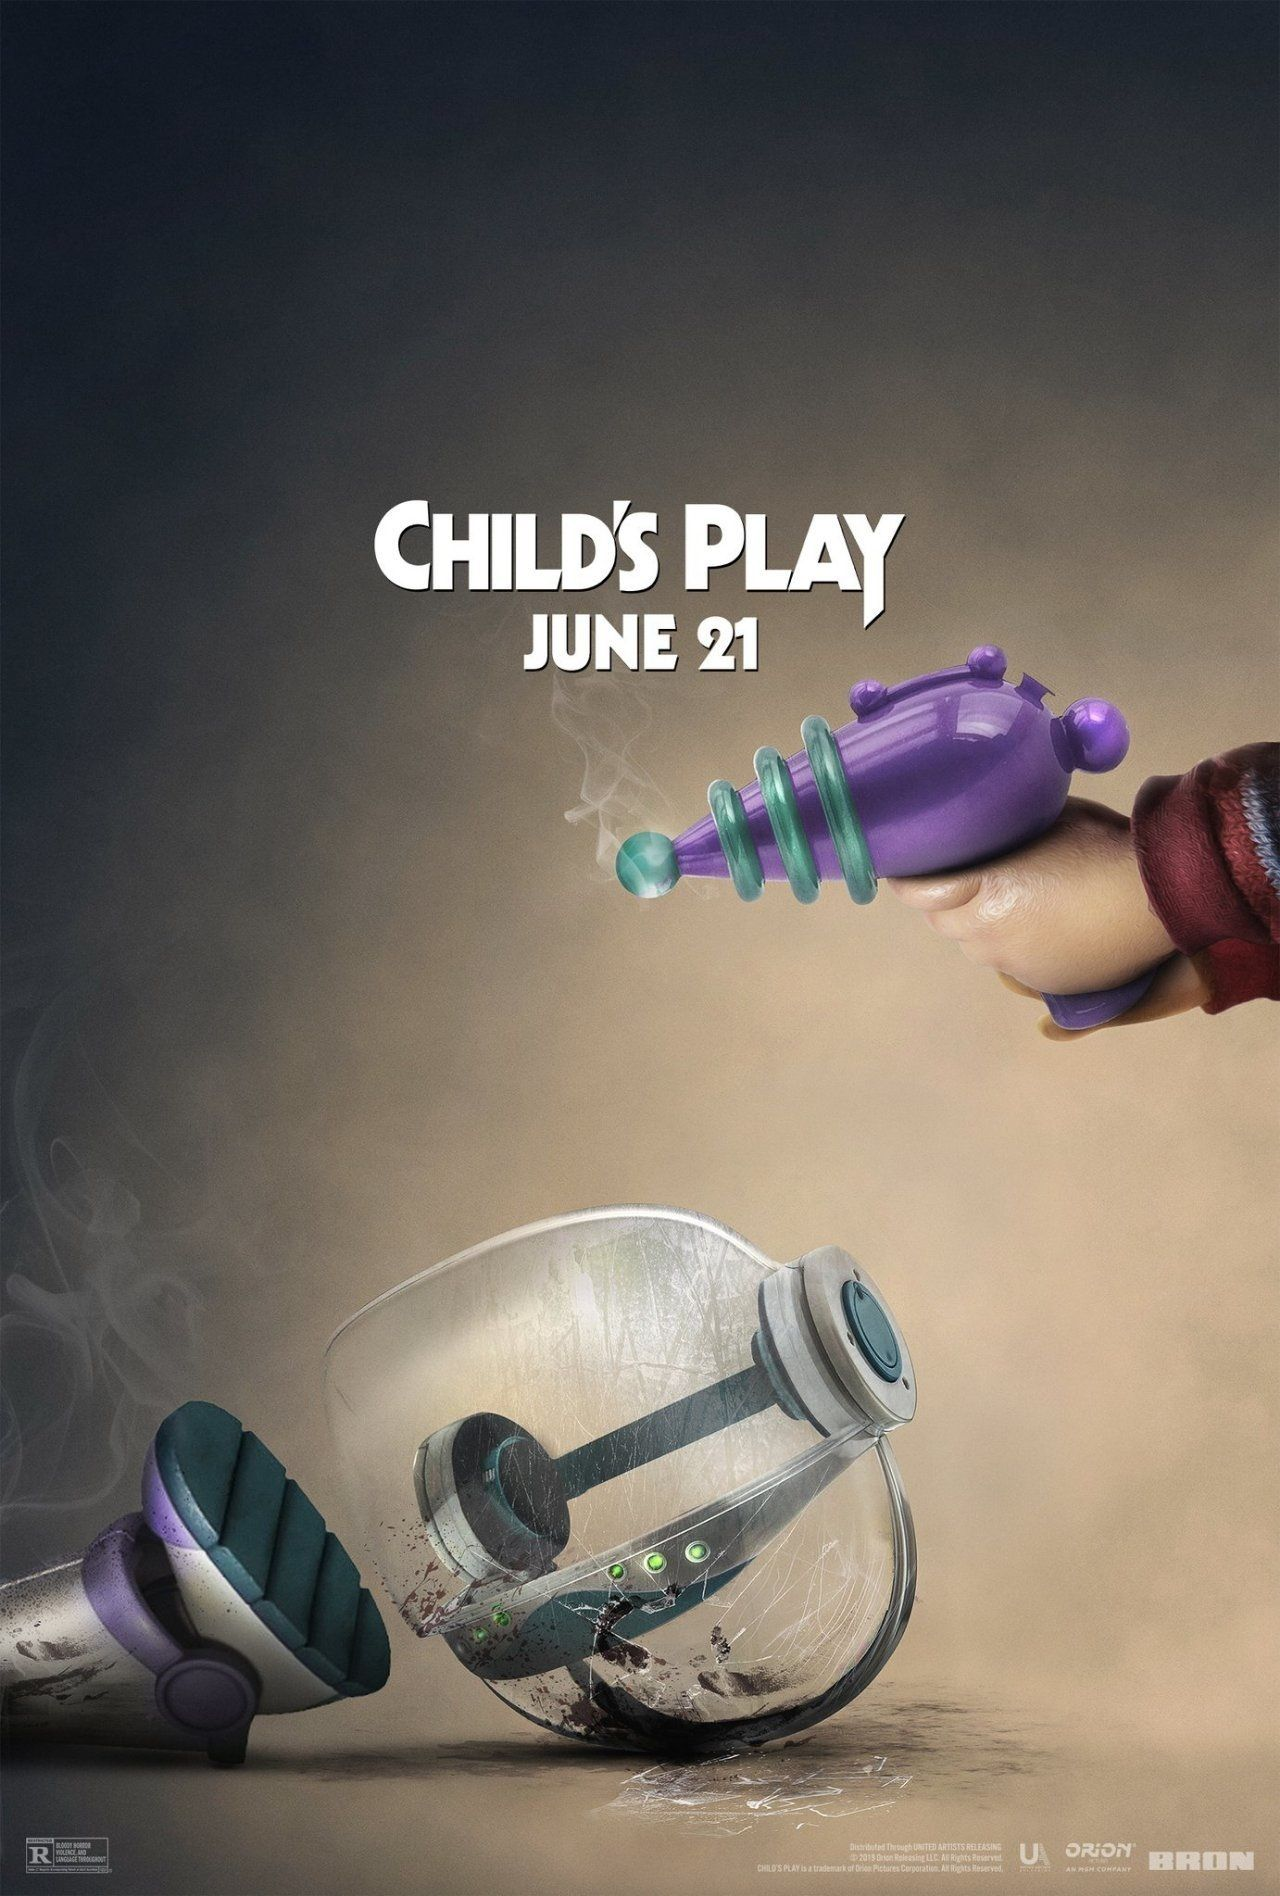 Cool New Poster For Child S Play Reveals Buzz Lightyear Toy Story Target S Doll Of Juegos Para Ninos Mejores Carteles De Peliculas Juguetes De Toy Story